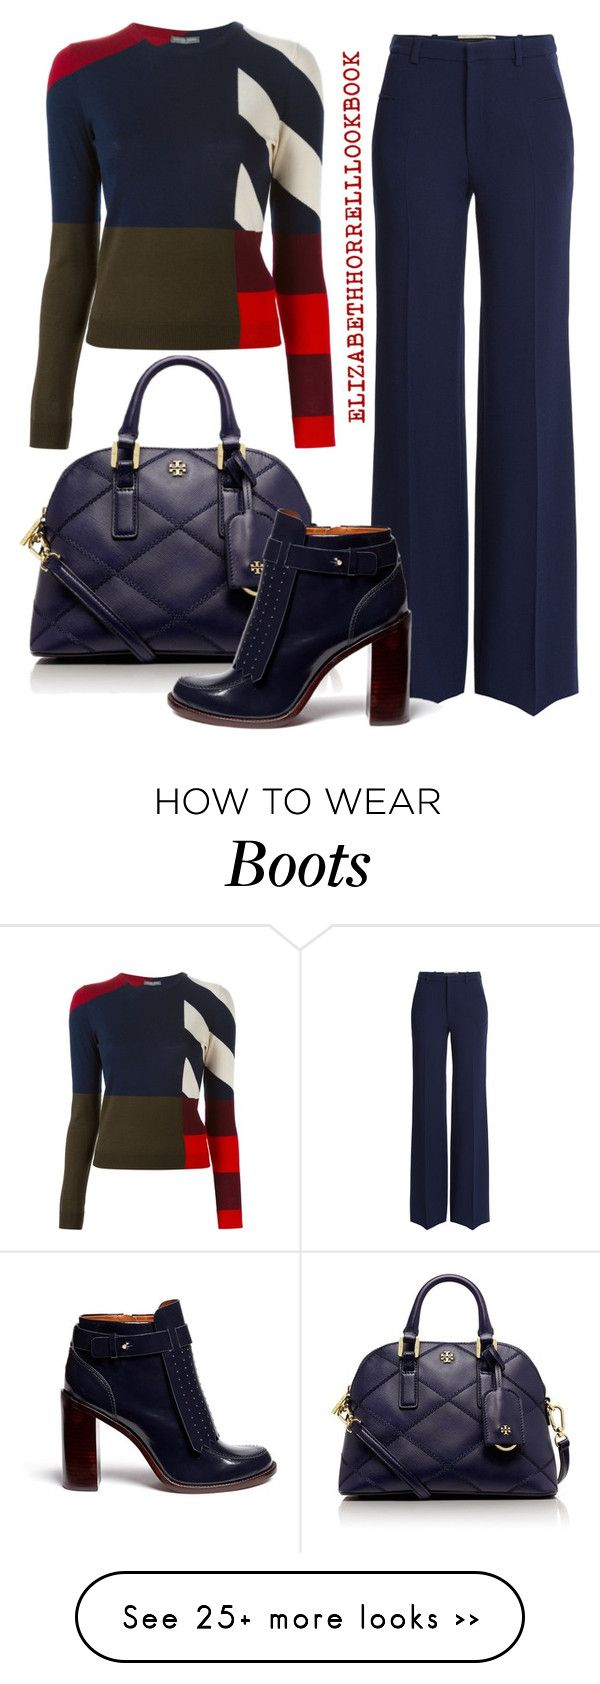 """LIZ"" by elizabethhorrell on Polyvore featuring Alexander McQueen, Tory Burch and Roland Mouret"